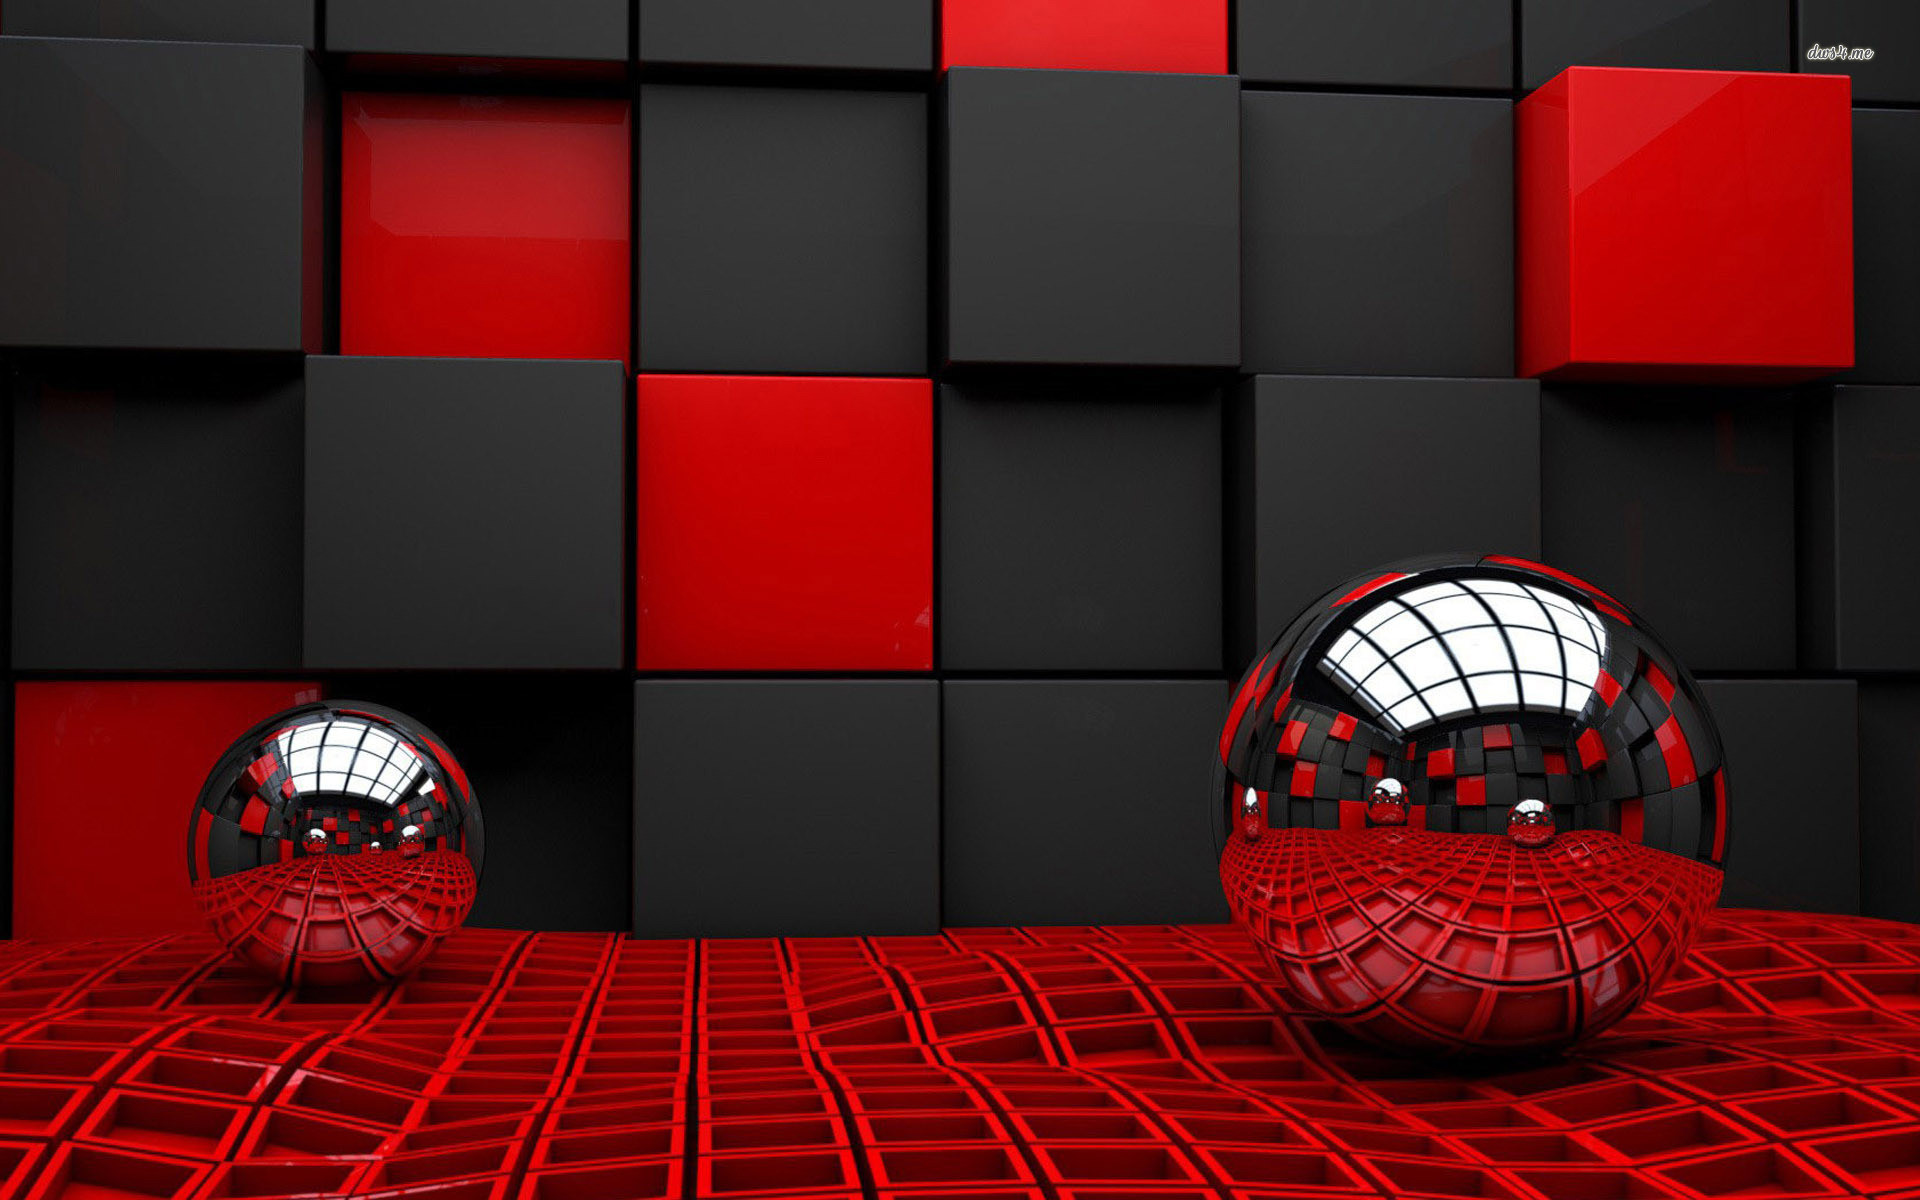 1920x1200 spheres reflecting the cube room wallpaper - 3D wallpapers - #12006 .